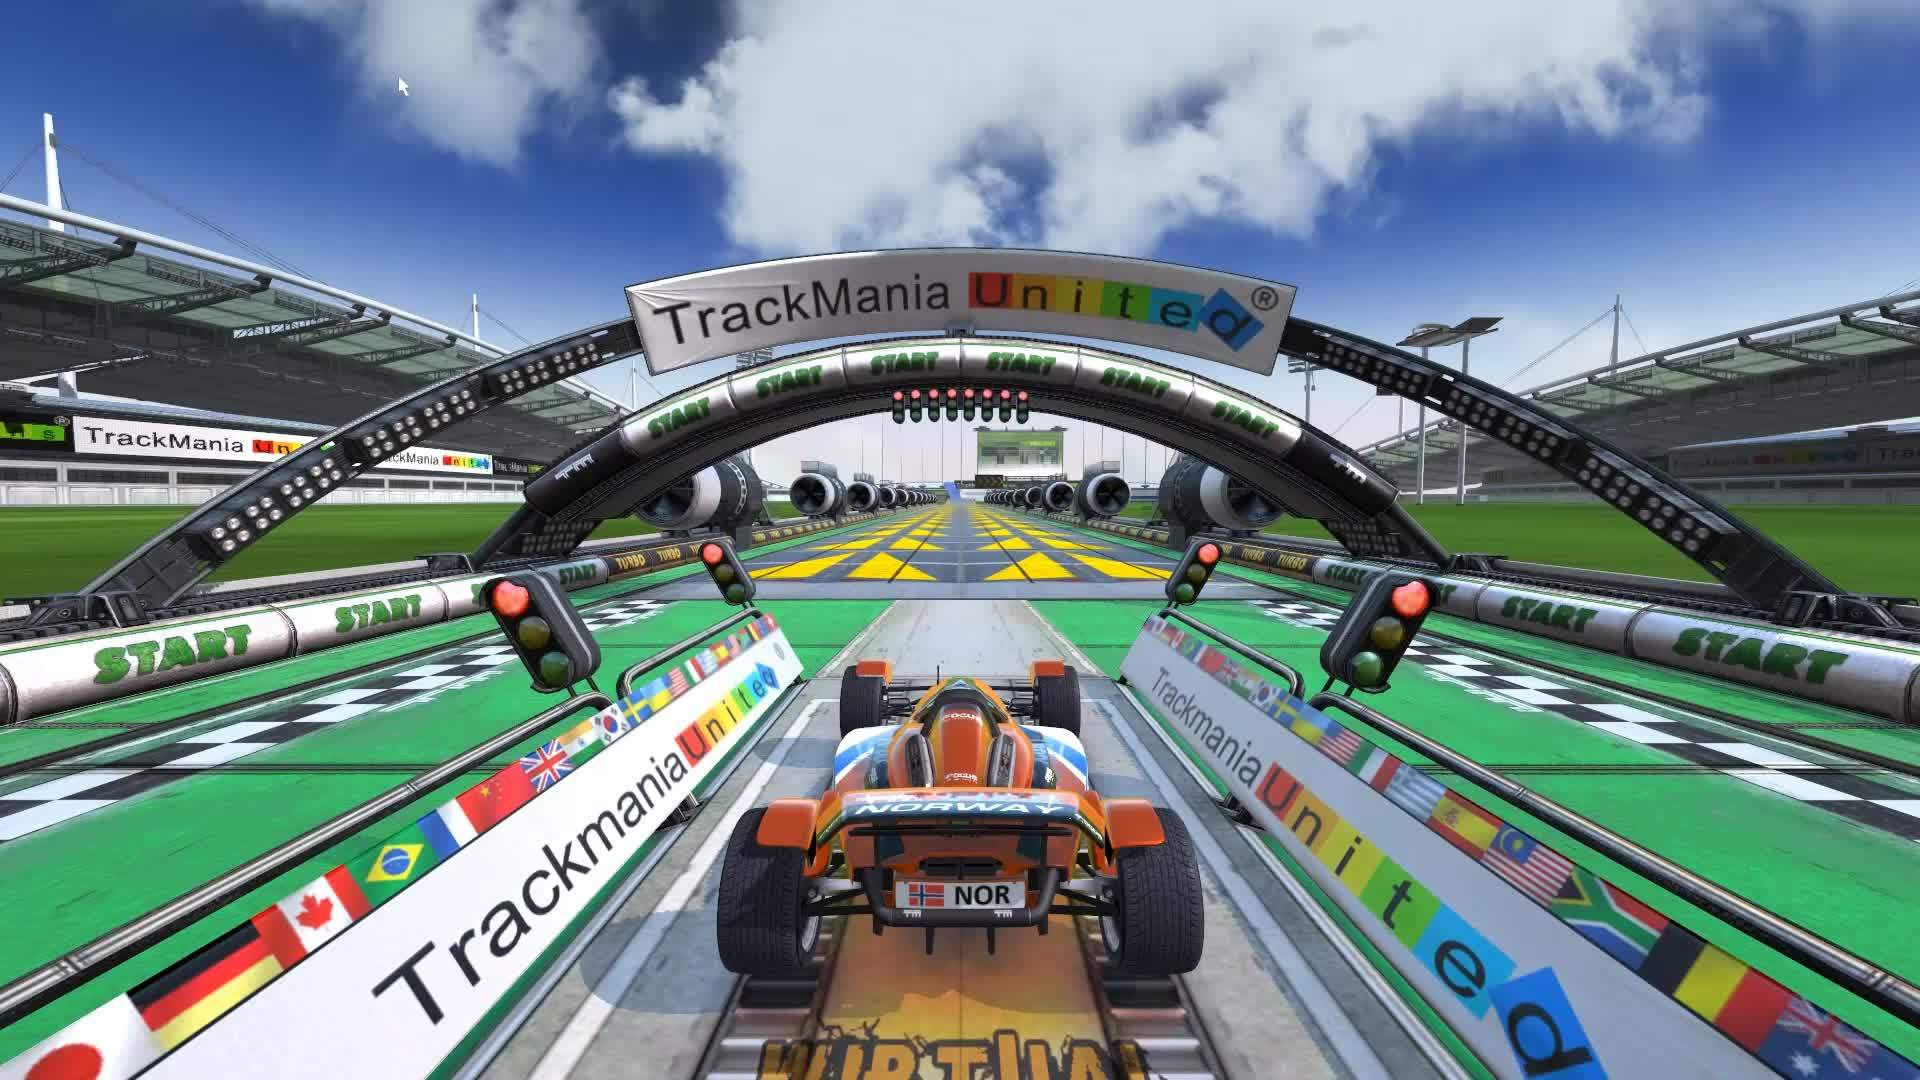 TrackMania, Trackmania, trackmania, When you try your best, but you don't succeed GIFs